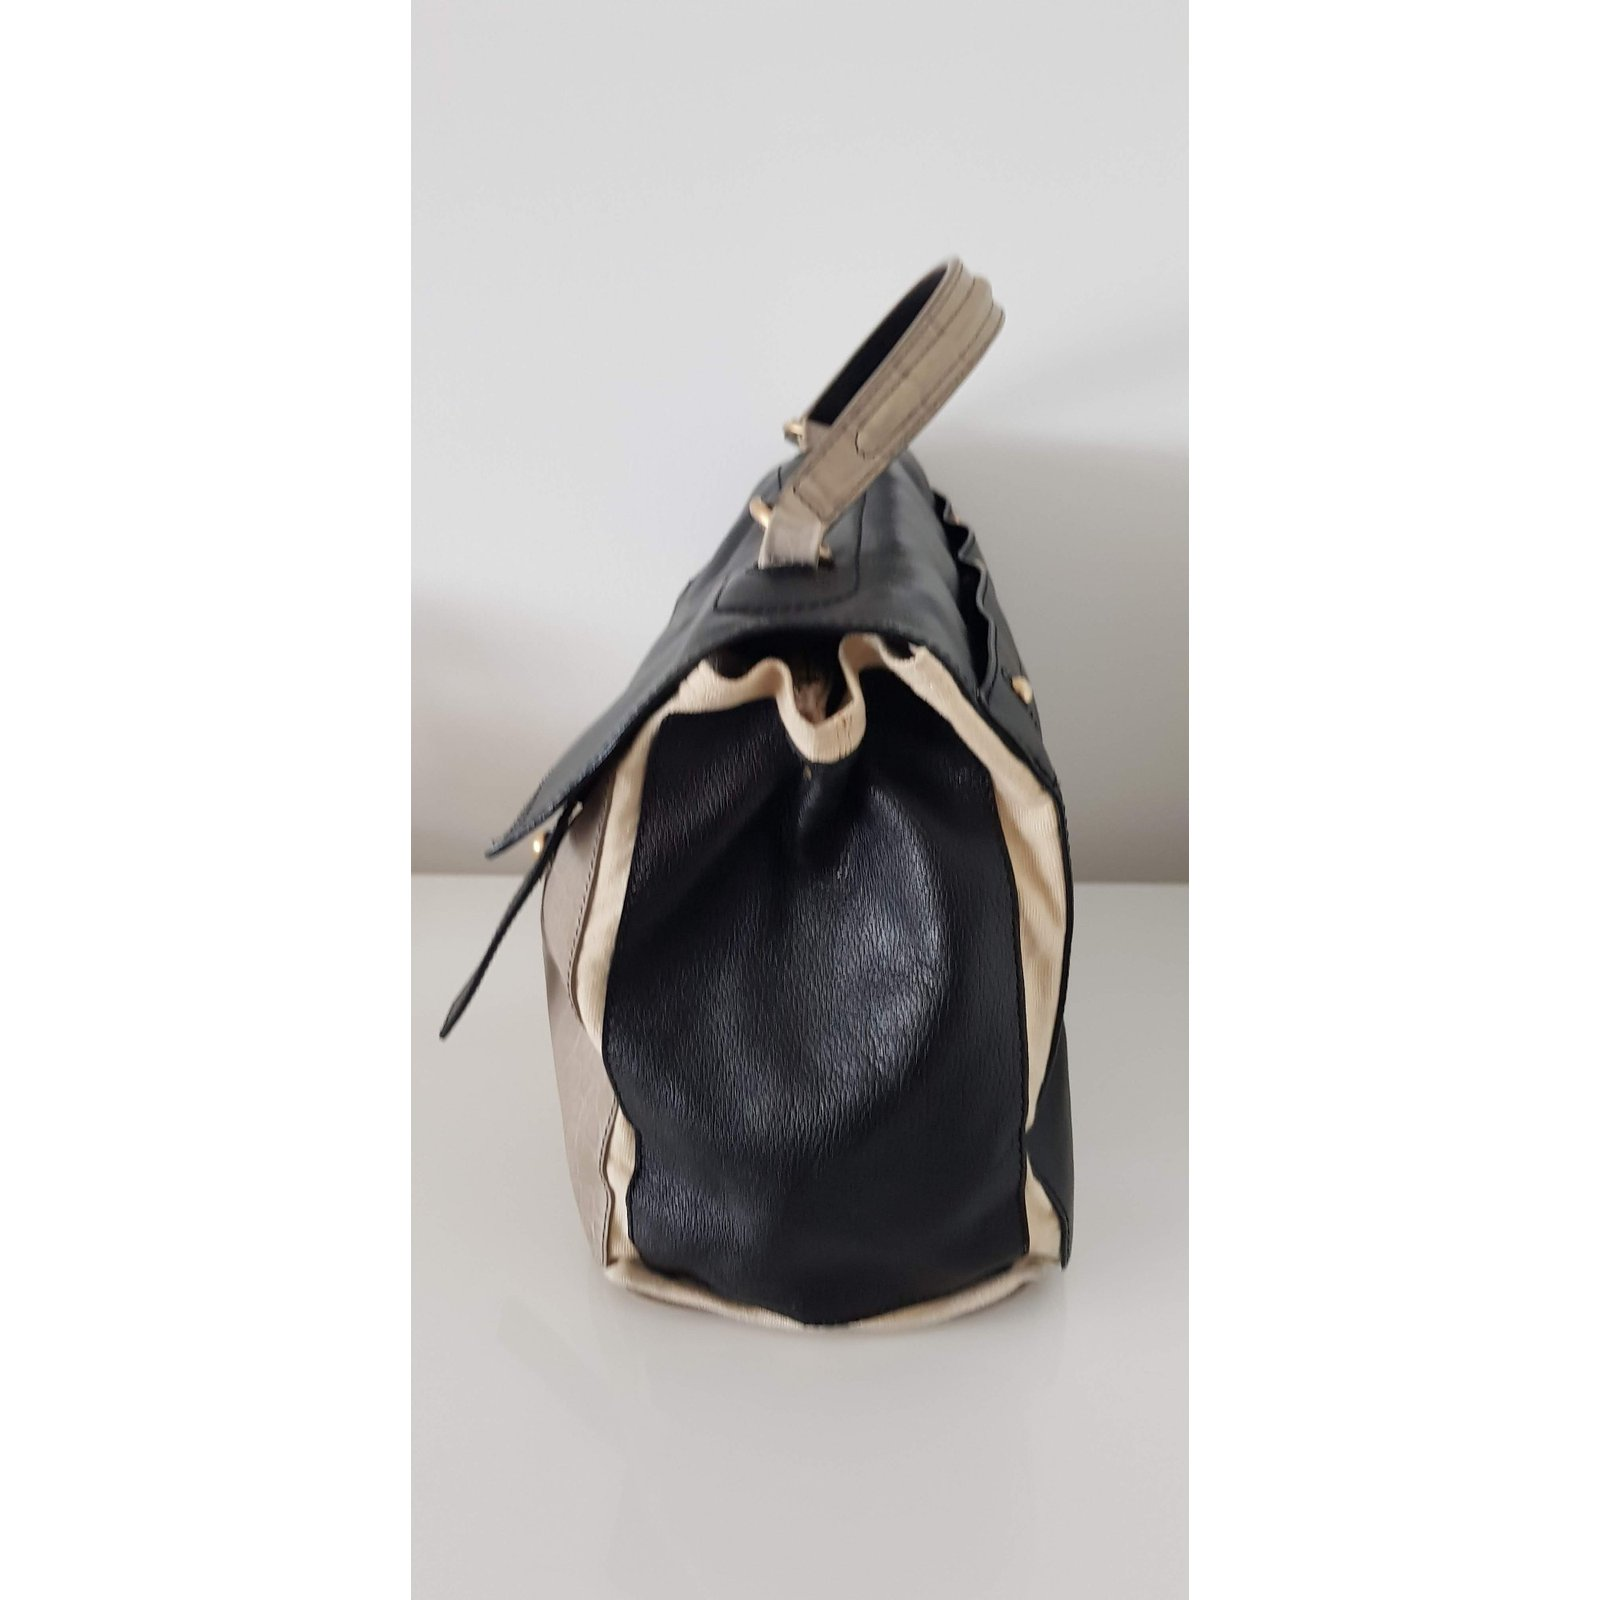 3492520e3d Facebook · Pin This. Yves Saint Laurent muse two large Handbags Leather